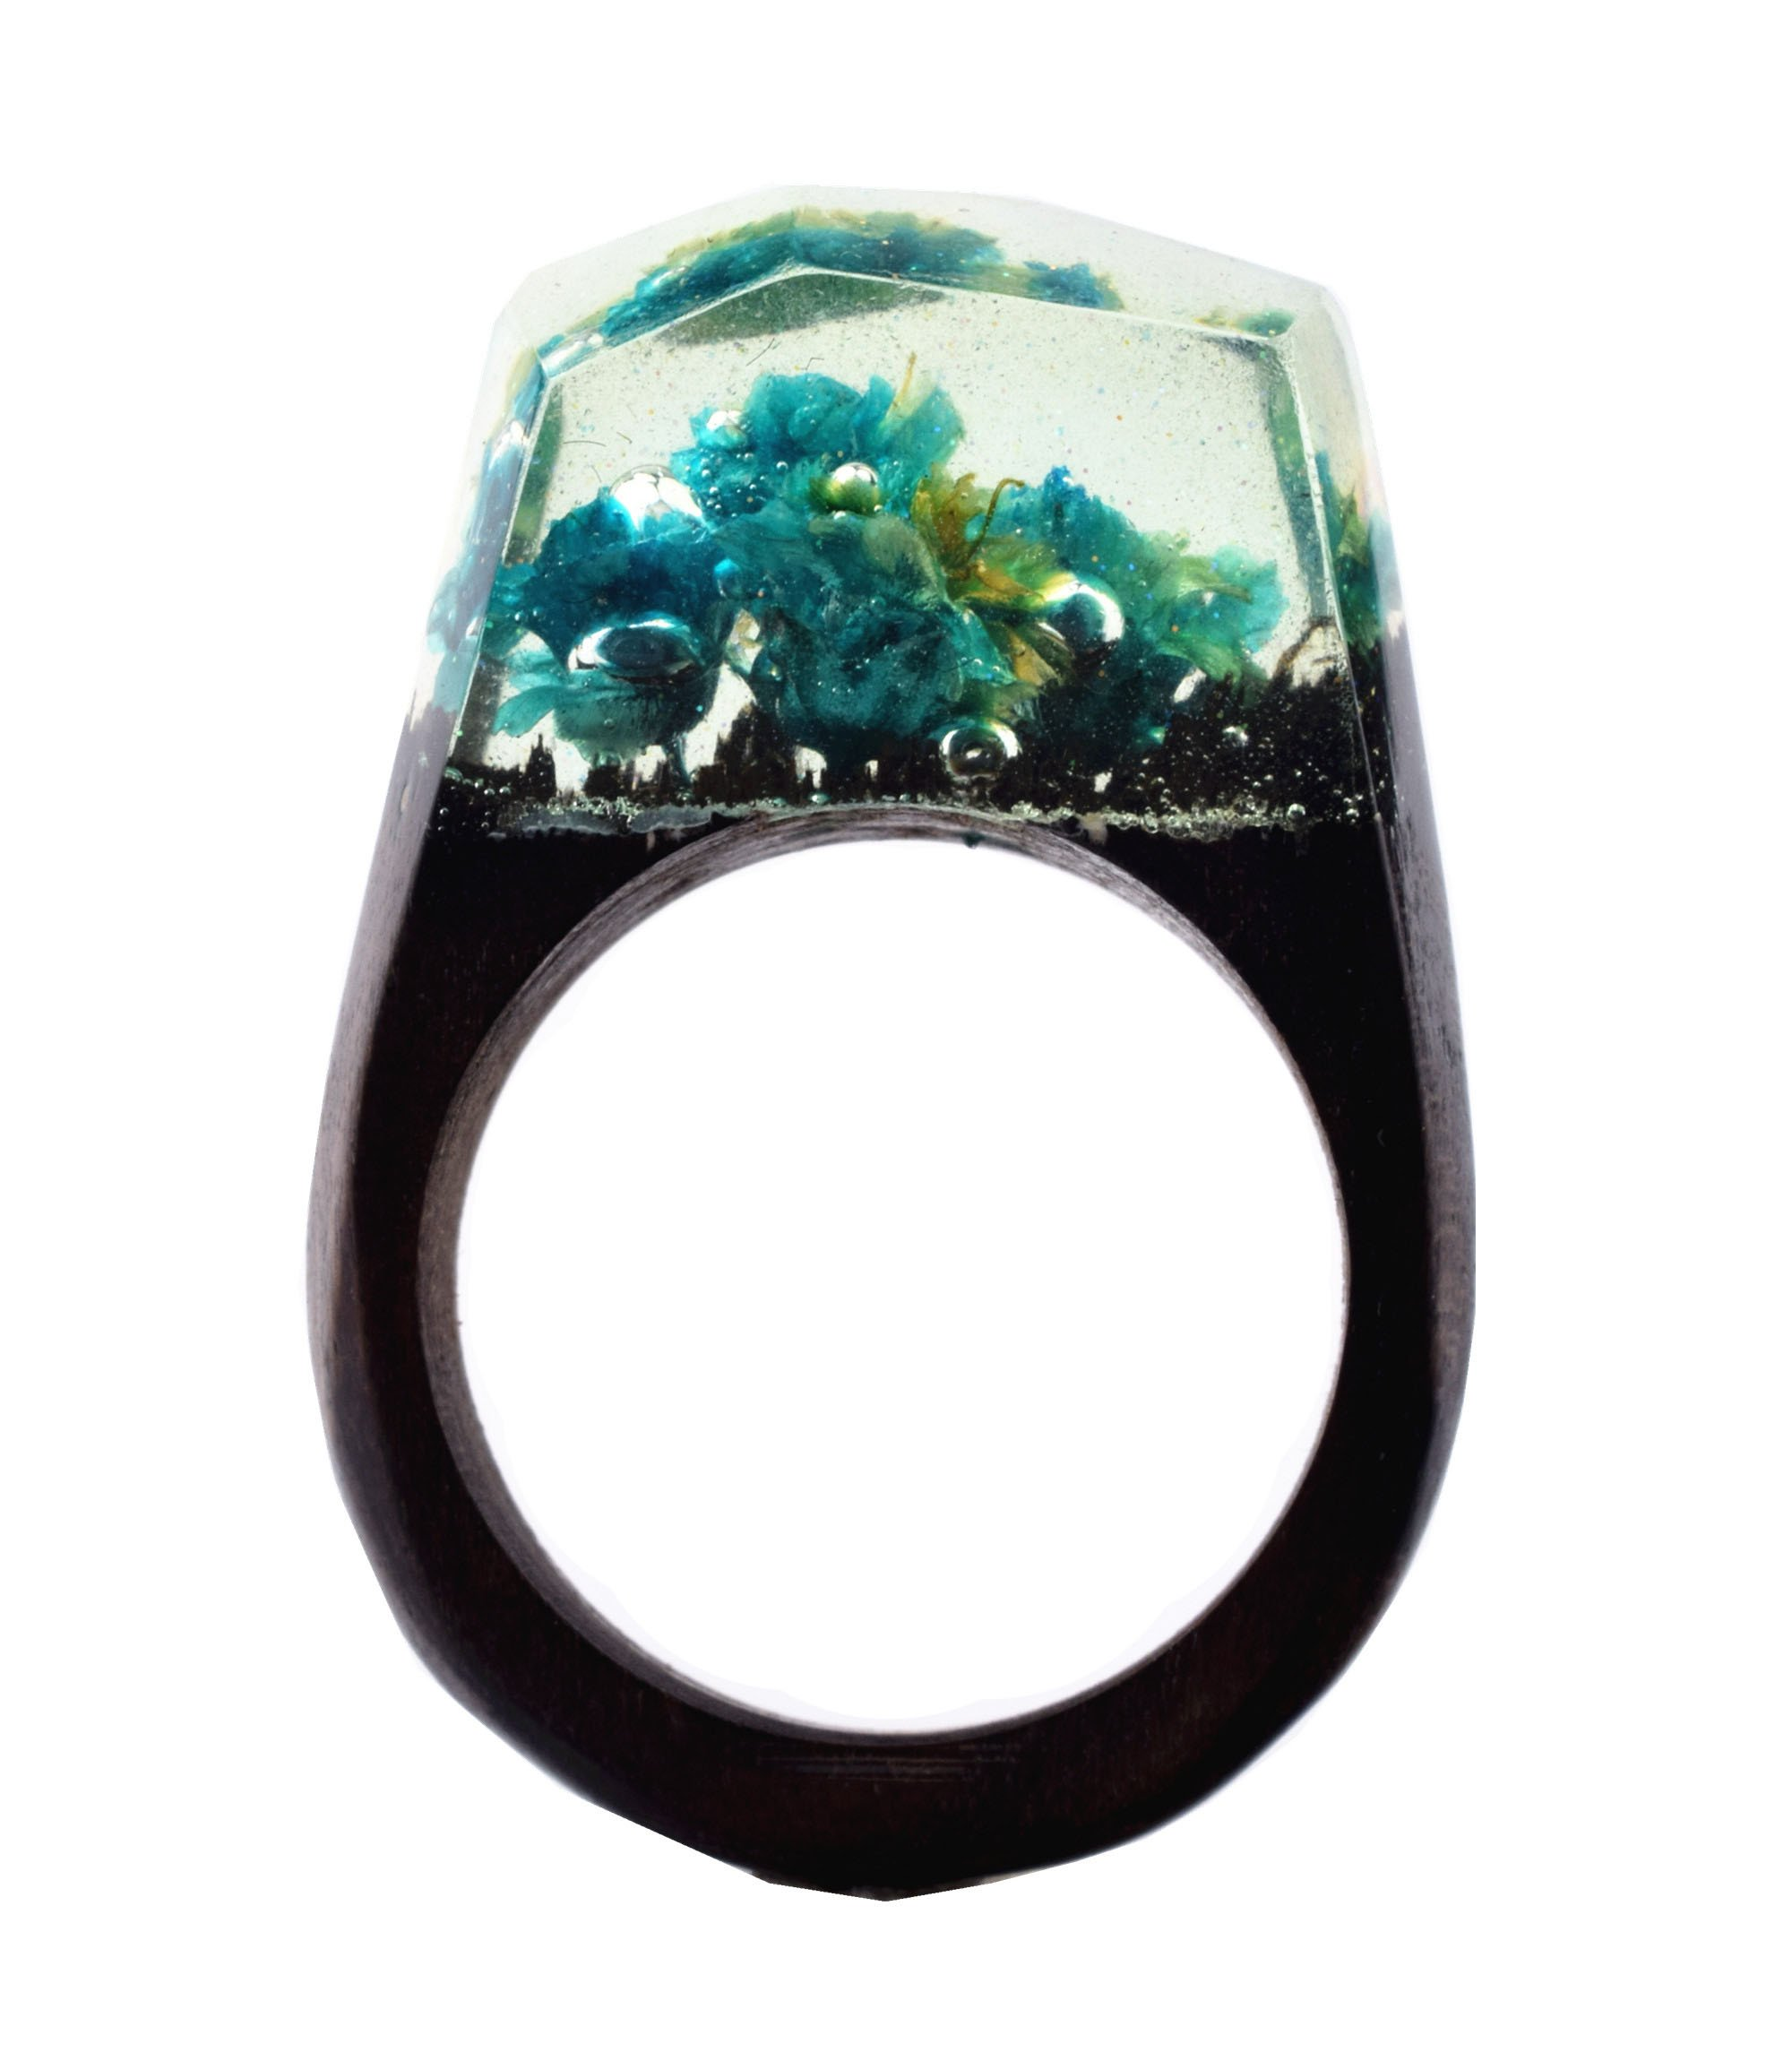 Heyou Love Handmade Wood Resin Ring With Blue Flowers Micro Inside Rings Jewelry